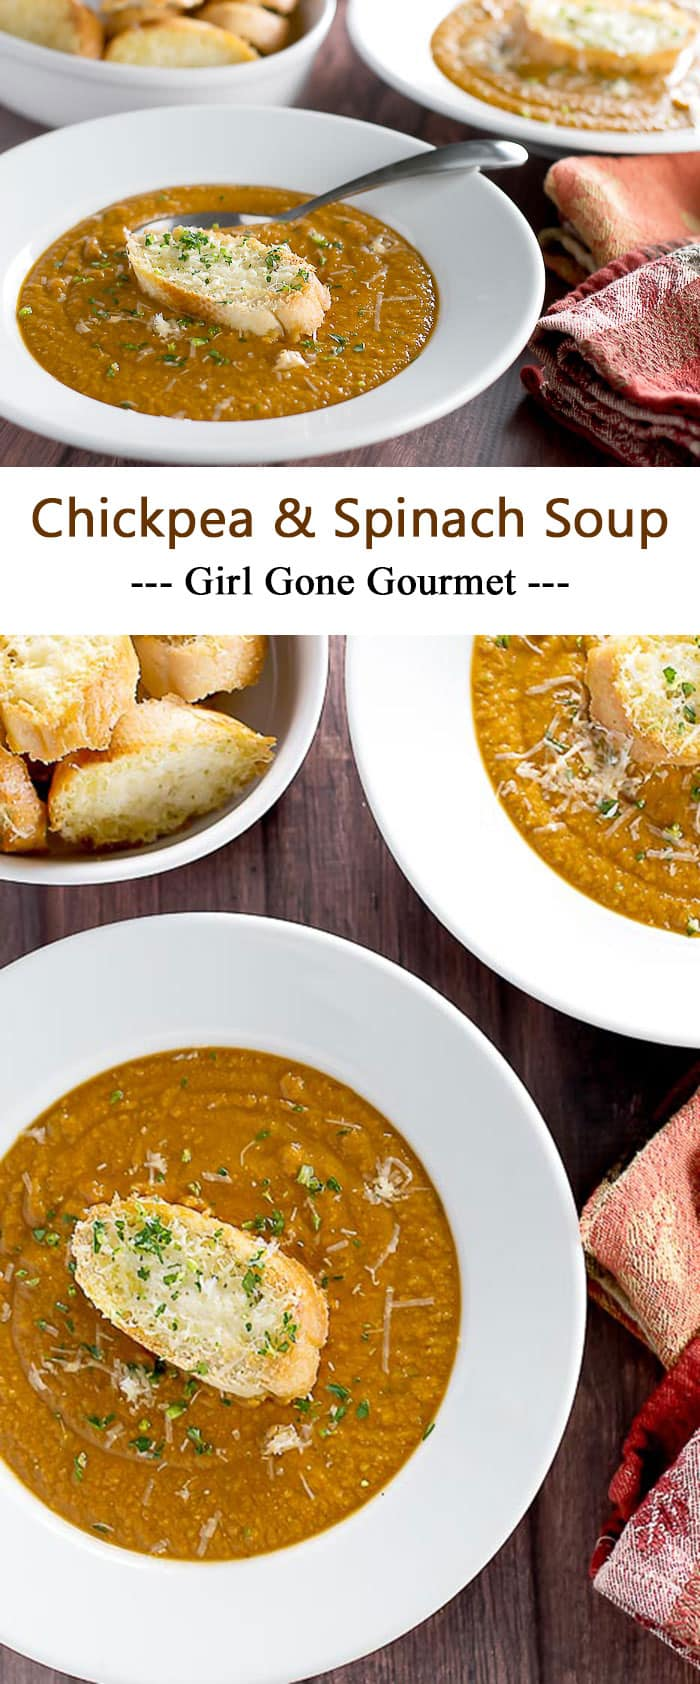 This soup takes only 30 minutes - including the parmesan crostini! It's warming and so delicious | girlgonegourmet.com